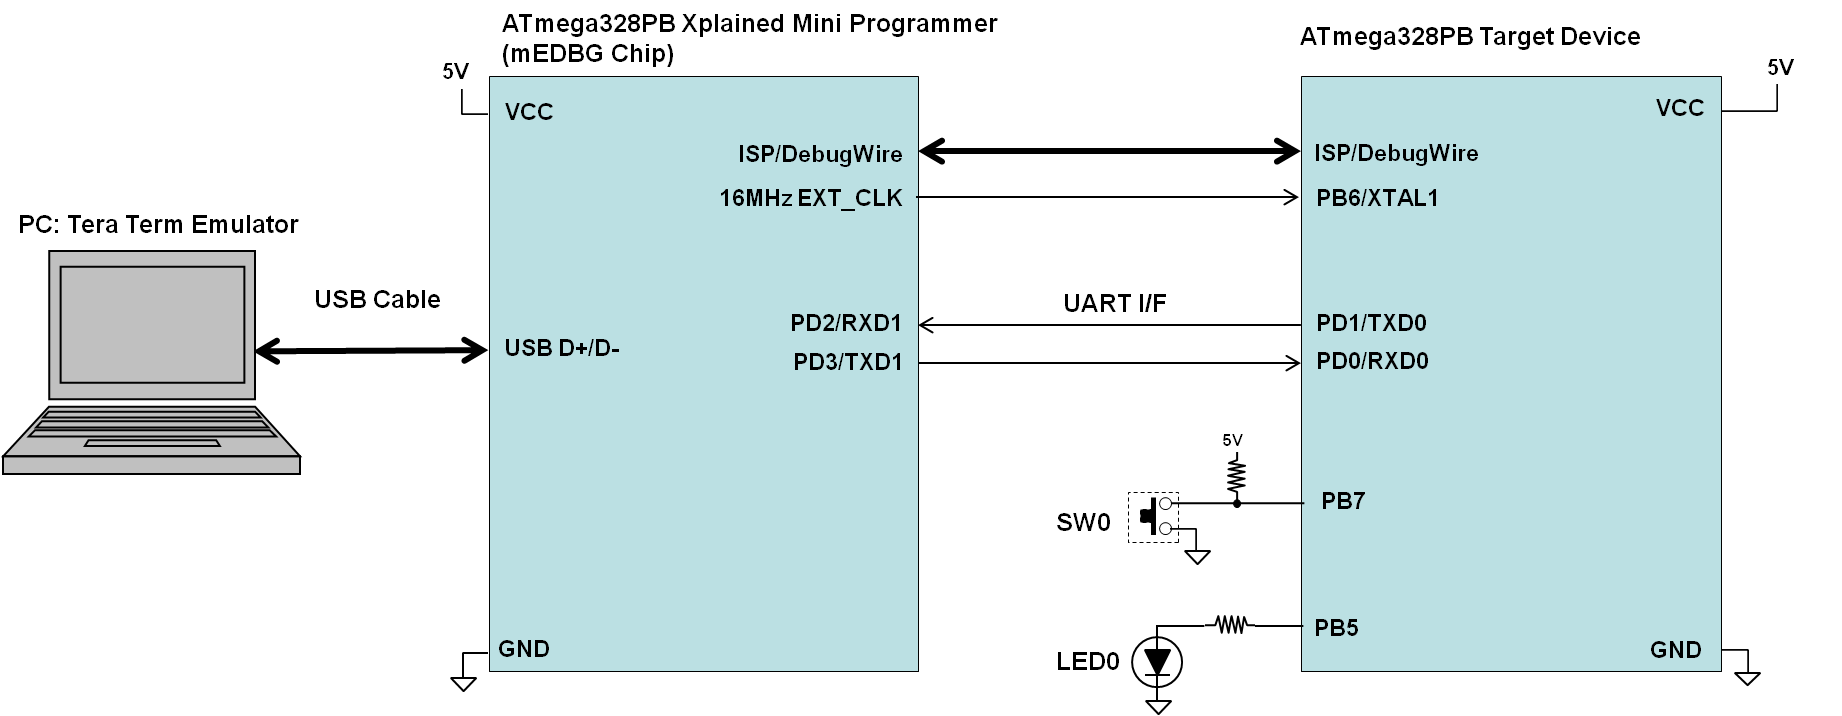 xplained-mini-connection-diagram-teraterm.png